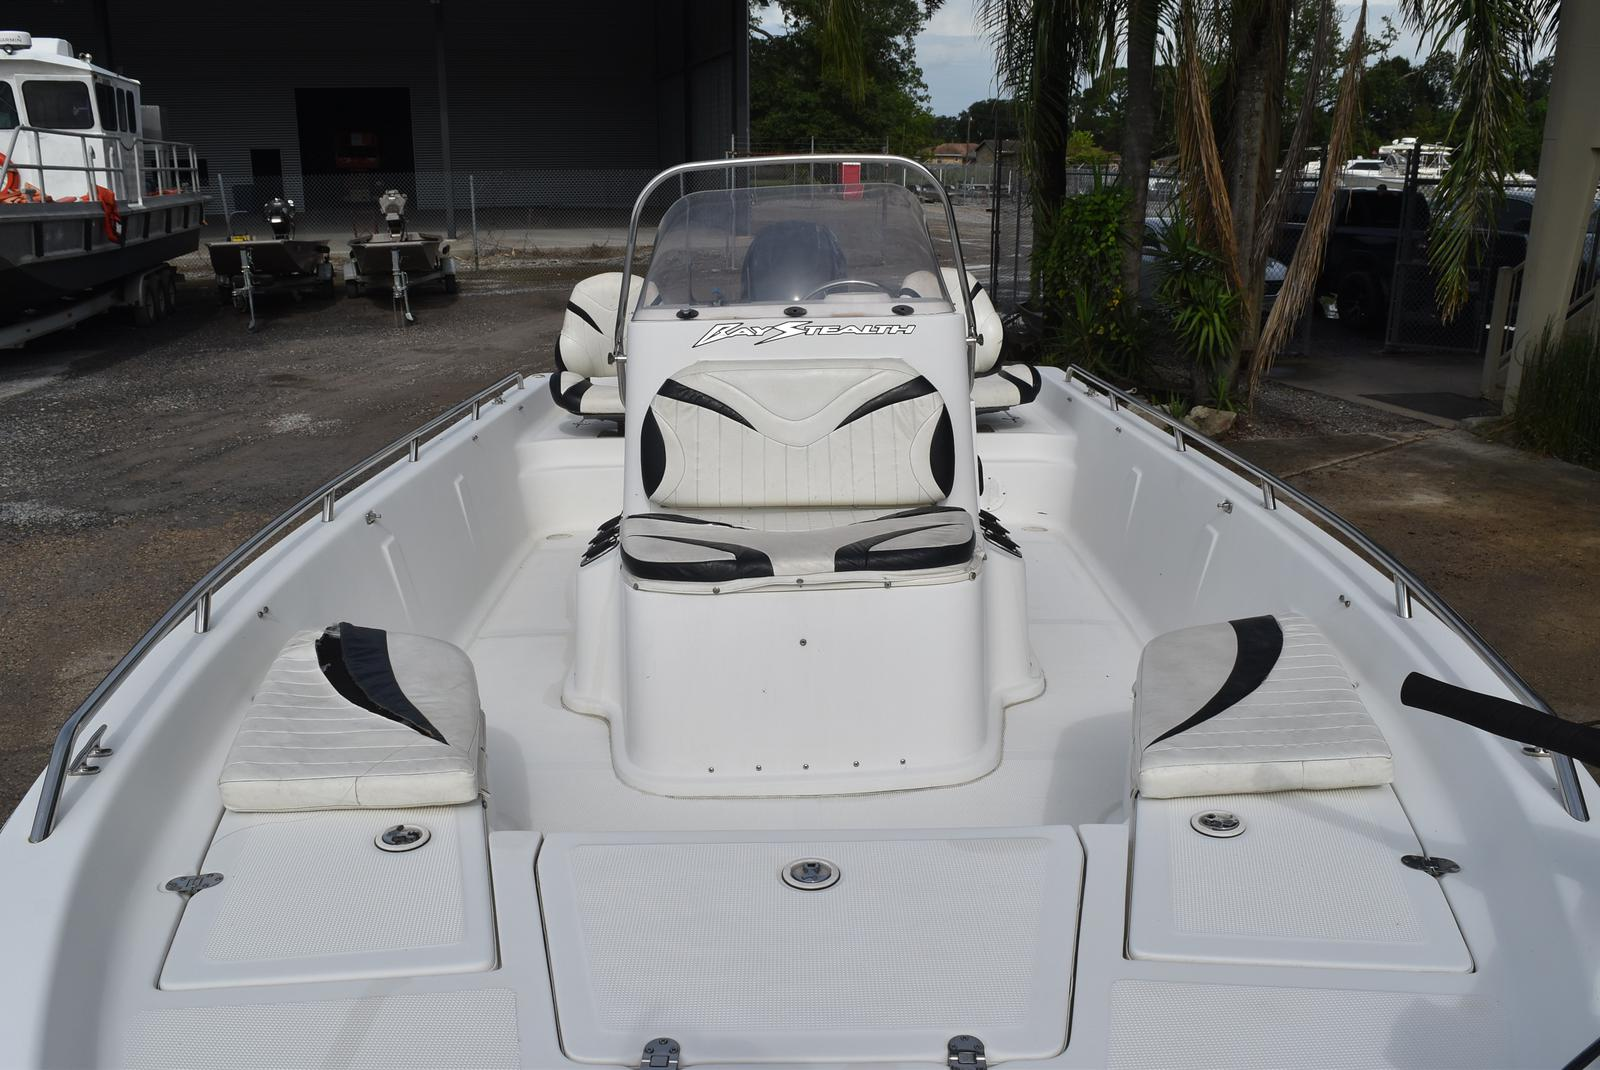 2006 Bay Stealth boat for sale, model of the boat is 2030 & Image # 5 of 12